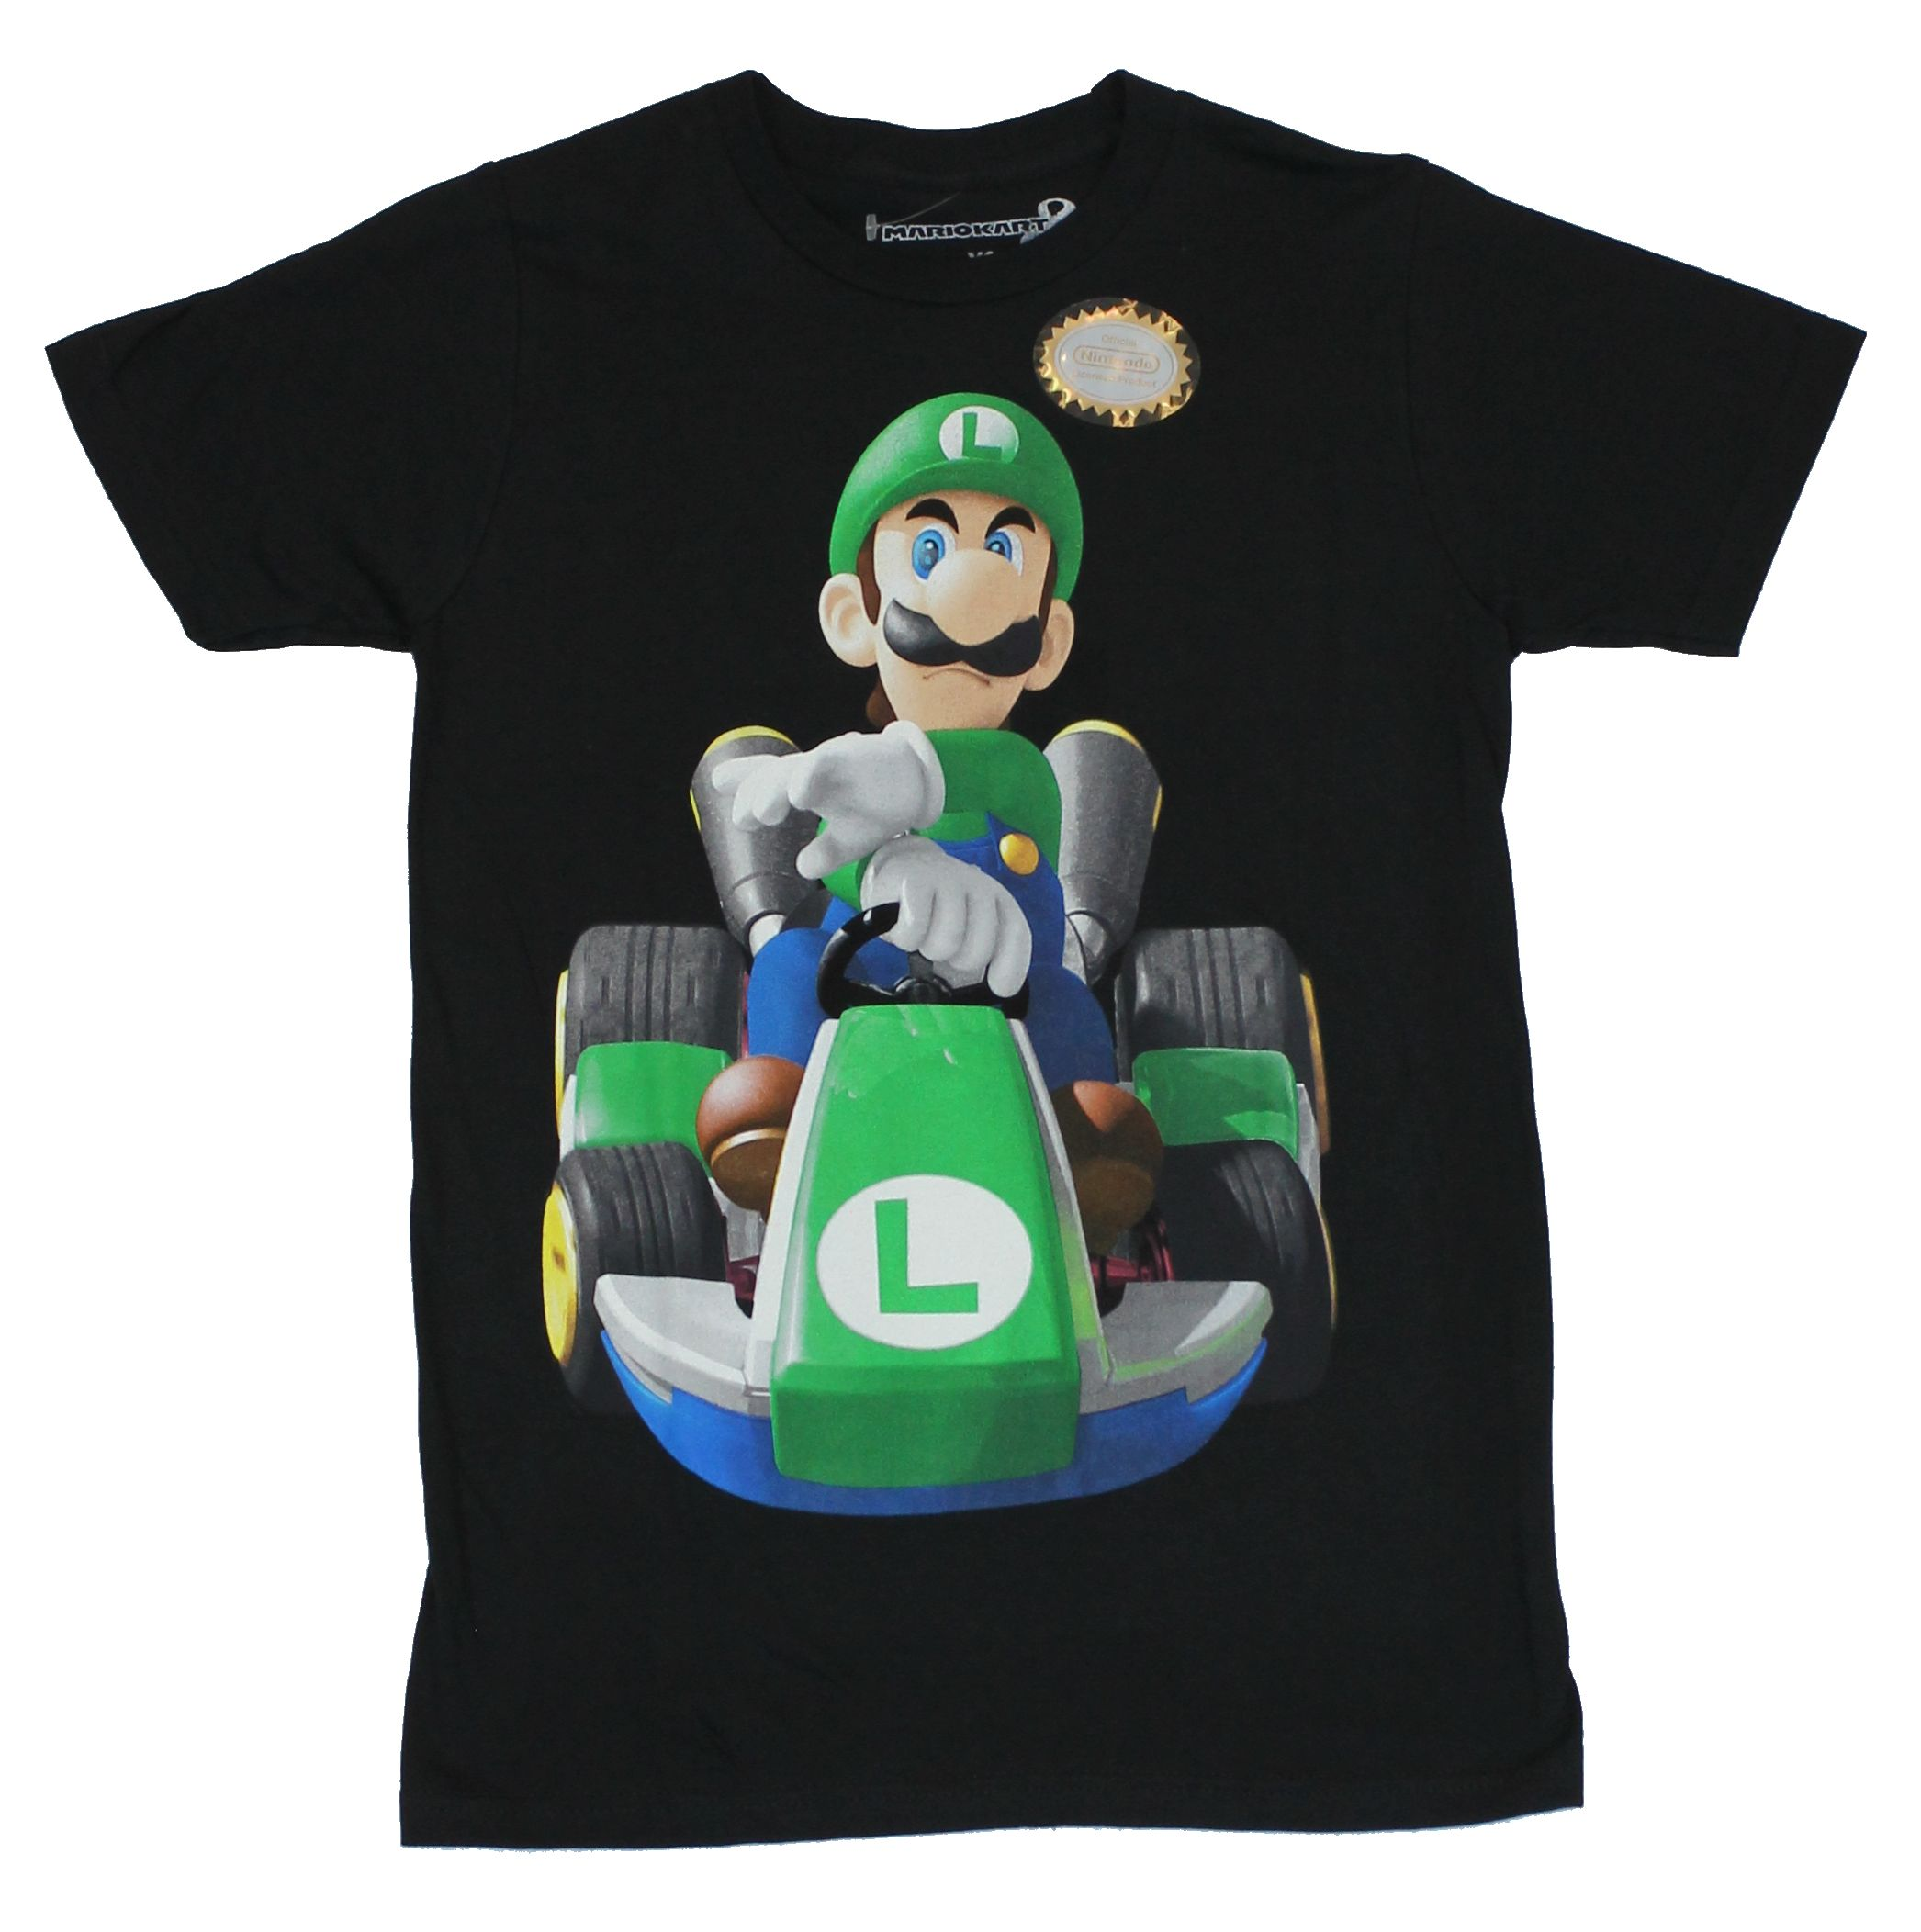 Mario Kart (Nintendo) Mens T-Shirt -Determined Luigi at the Wheel Image